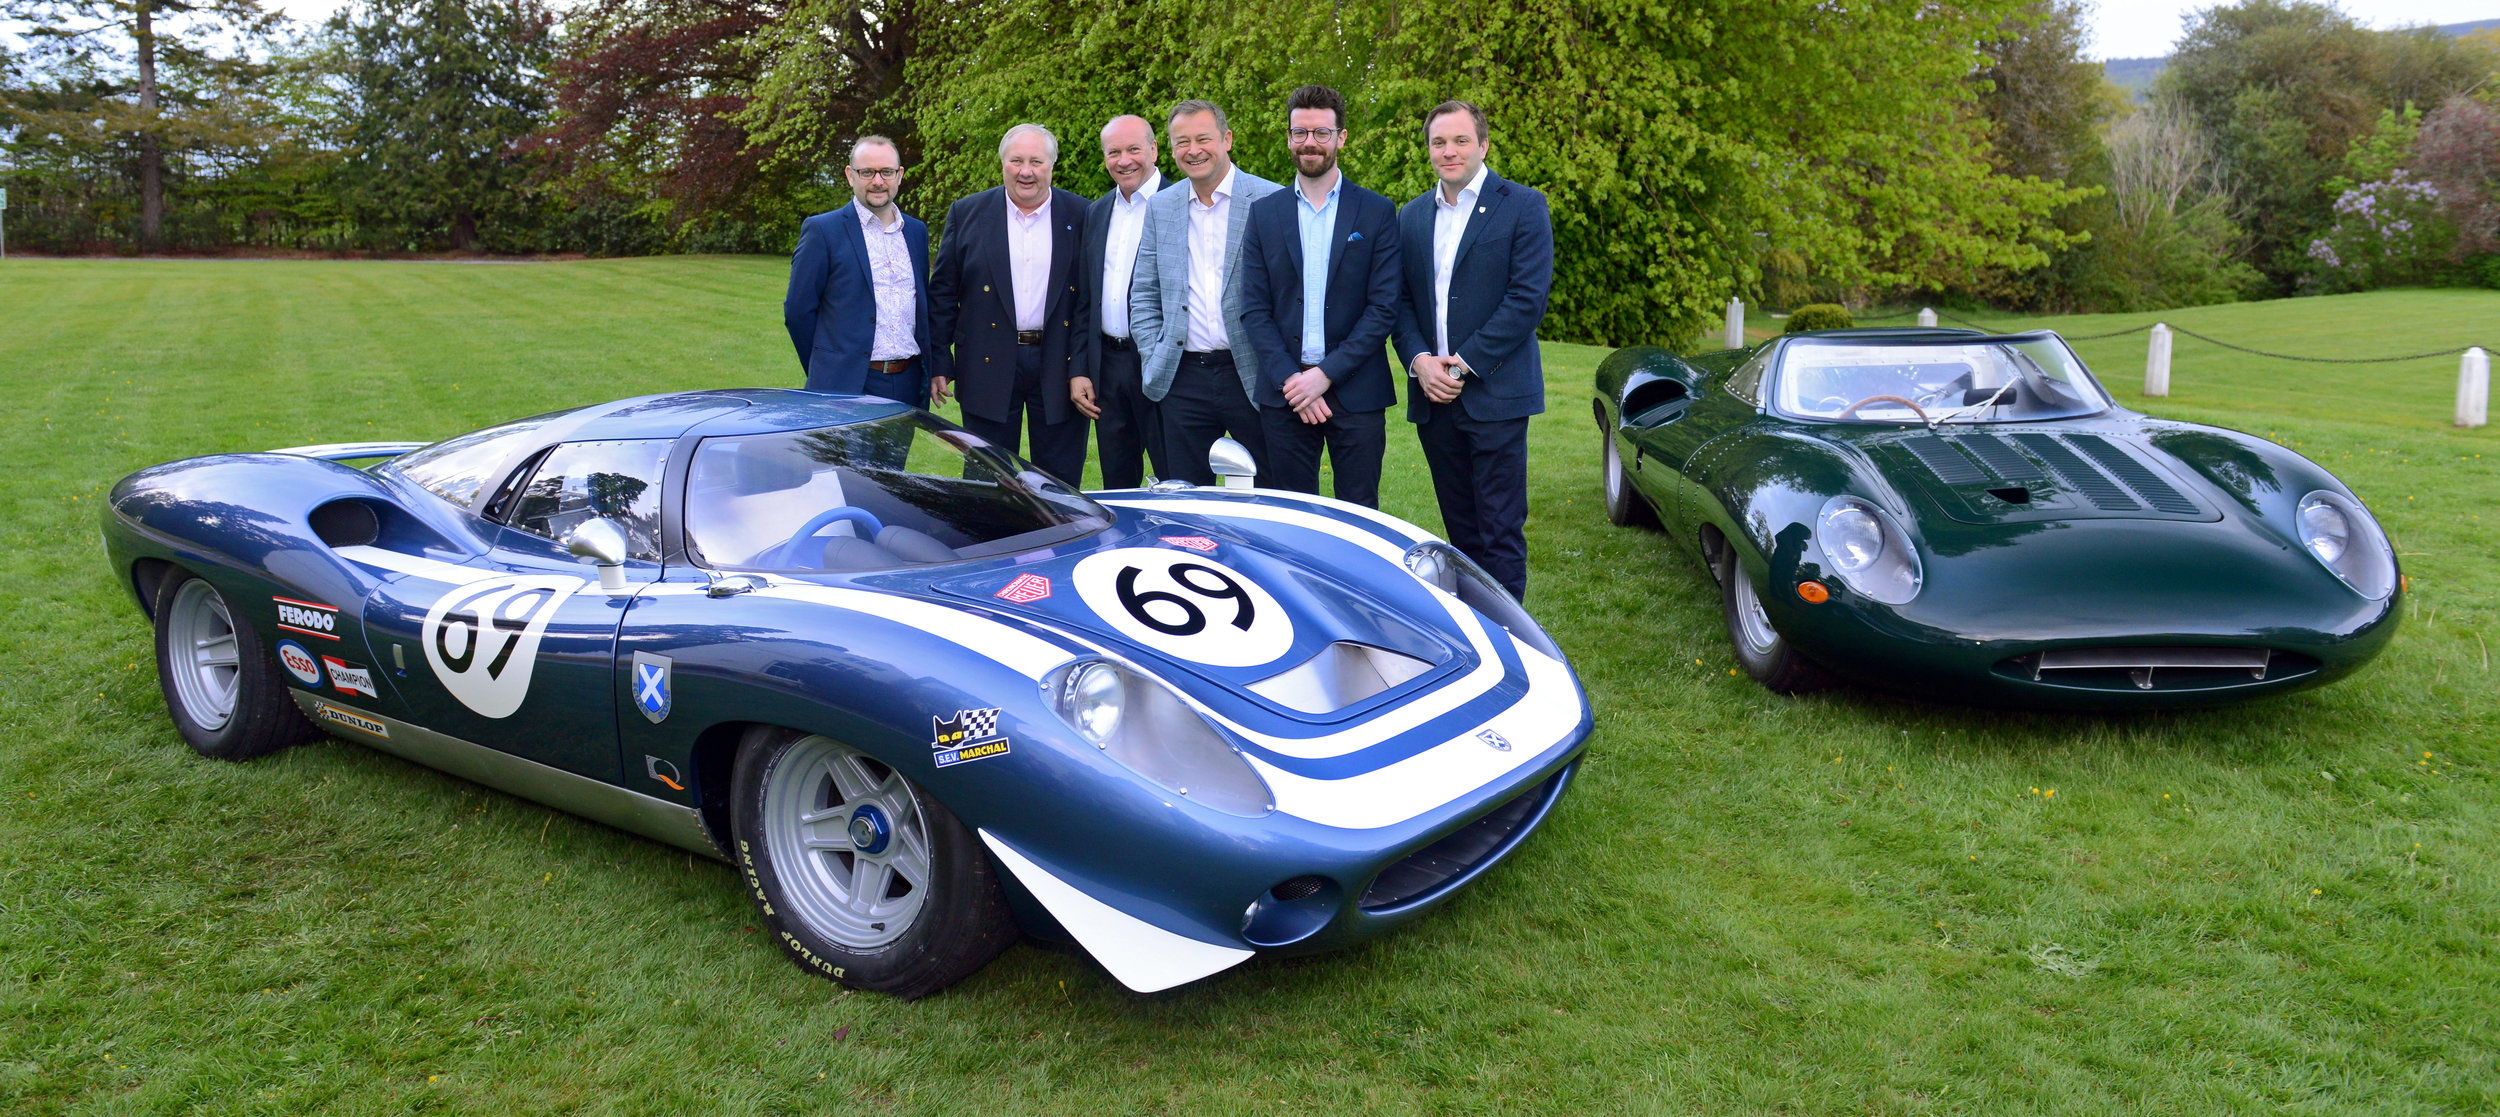 Left to Right: James Philpotts, Hugh McCaig, Neville Swales, Howard Guy, Patrick McCallion and Alasdair McCaig with the Ecurie Ecosse LM69 and Jaguar XJ13. Image courtesy of Fergusson Photography